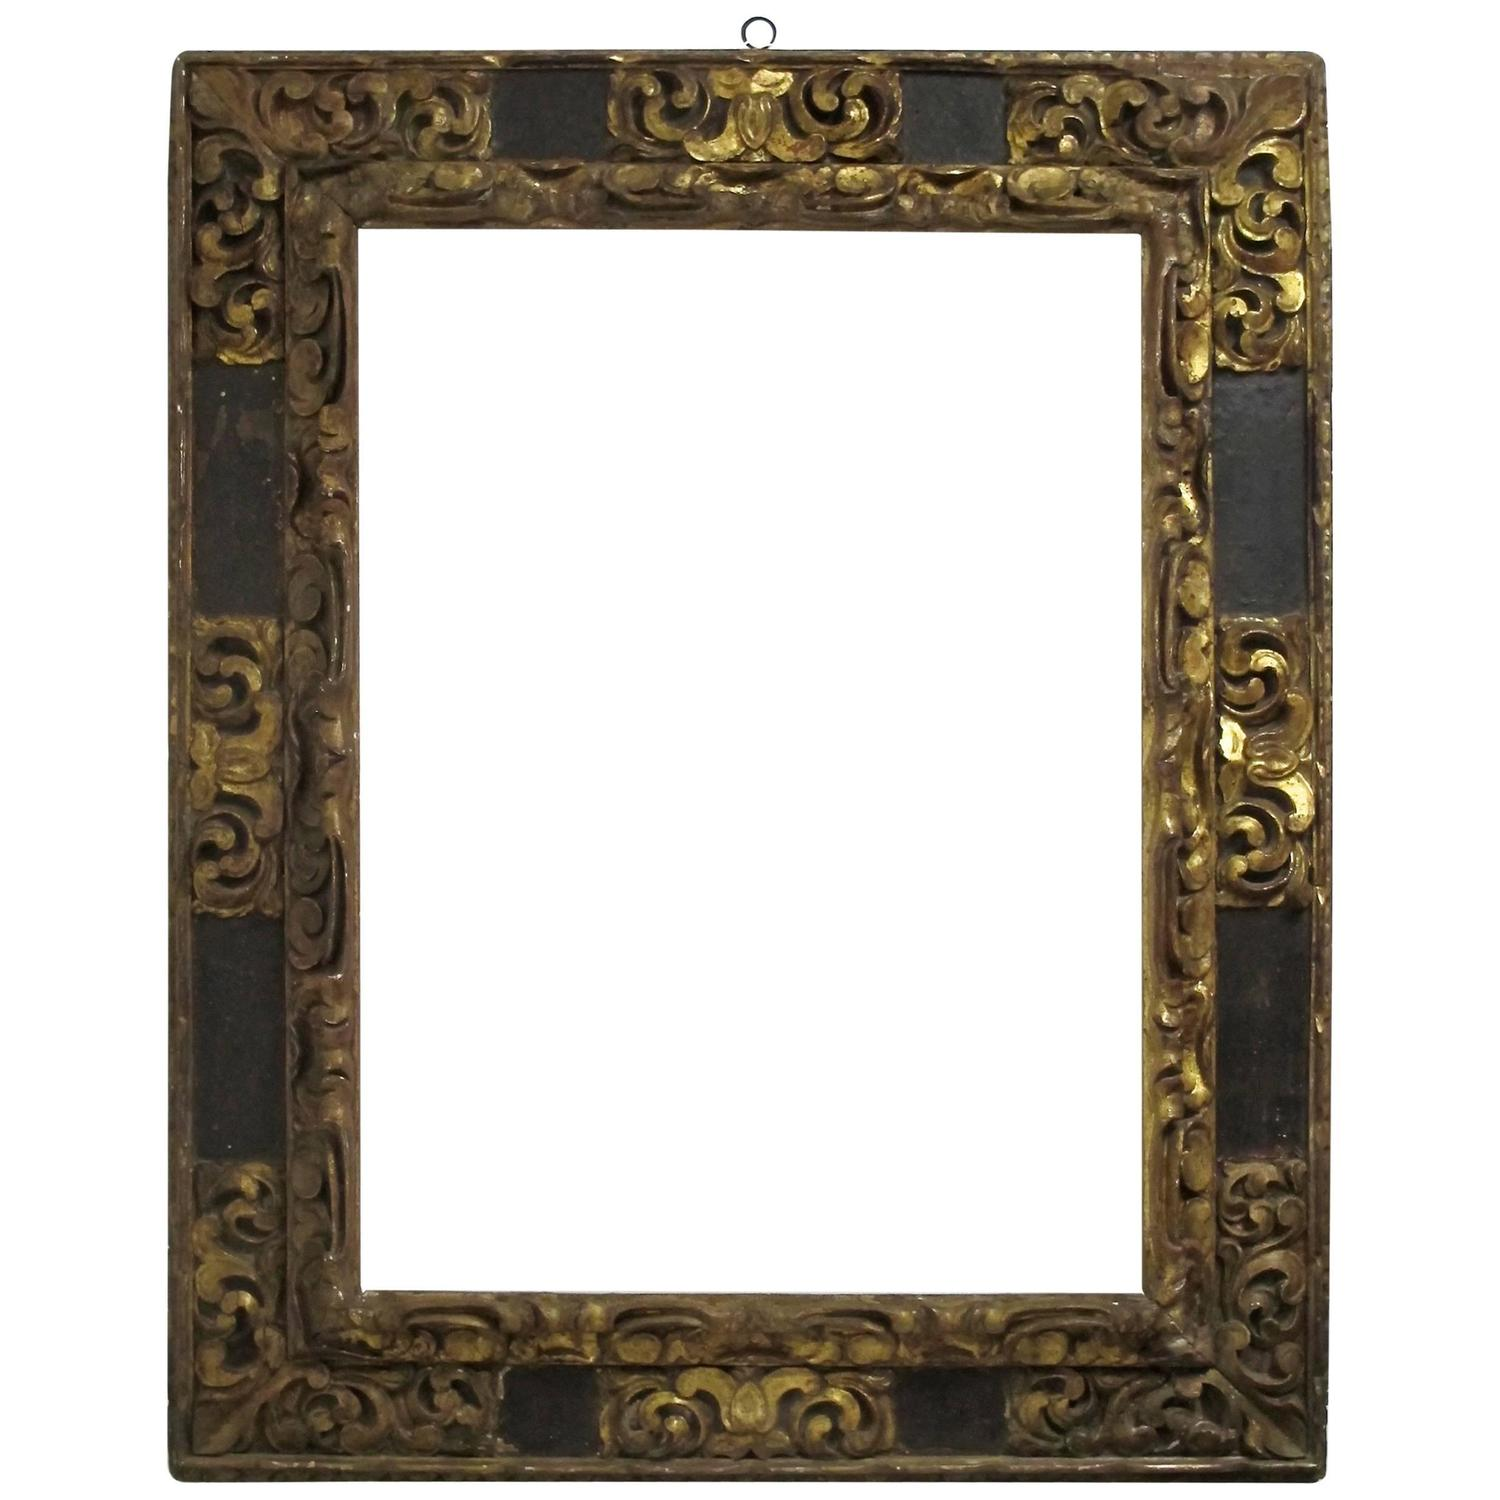 18th century spanish colonial frame for sale at 1stdibs. Black Bedroom Furniture Sets. Home Design Ideas